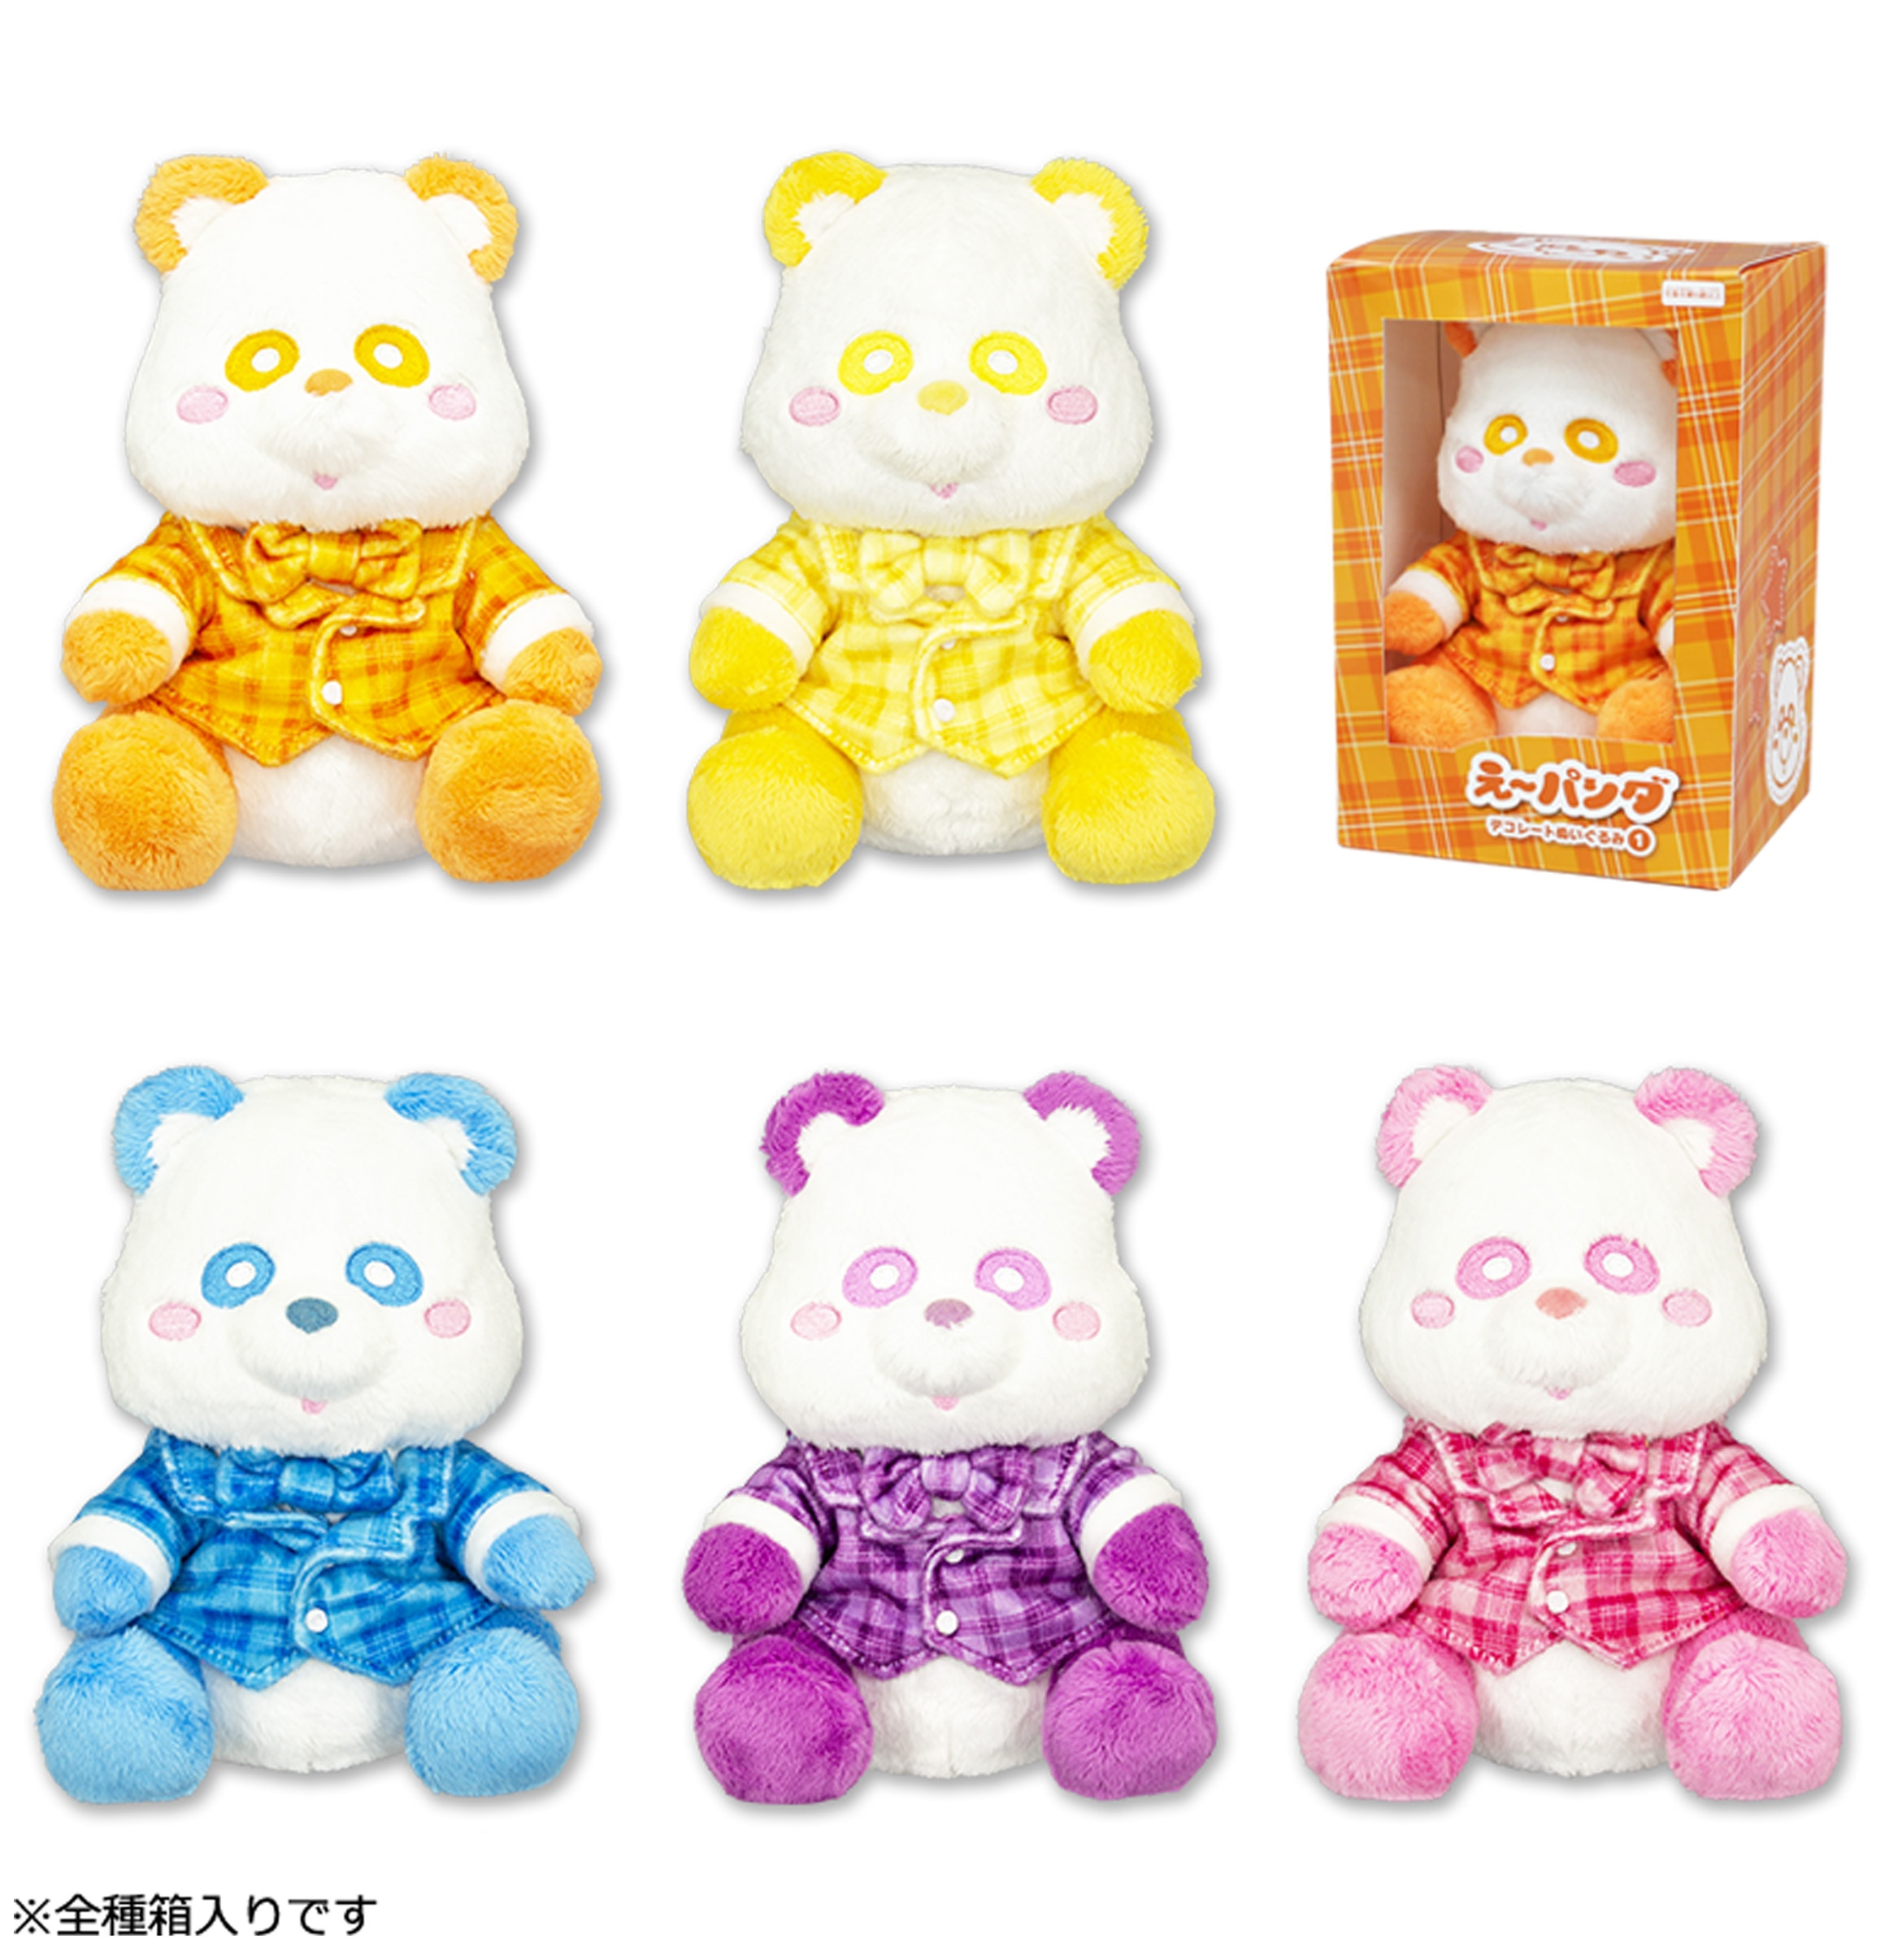 Goods a トリプル エー Official Website